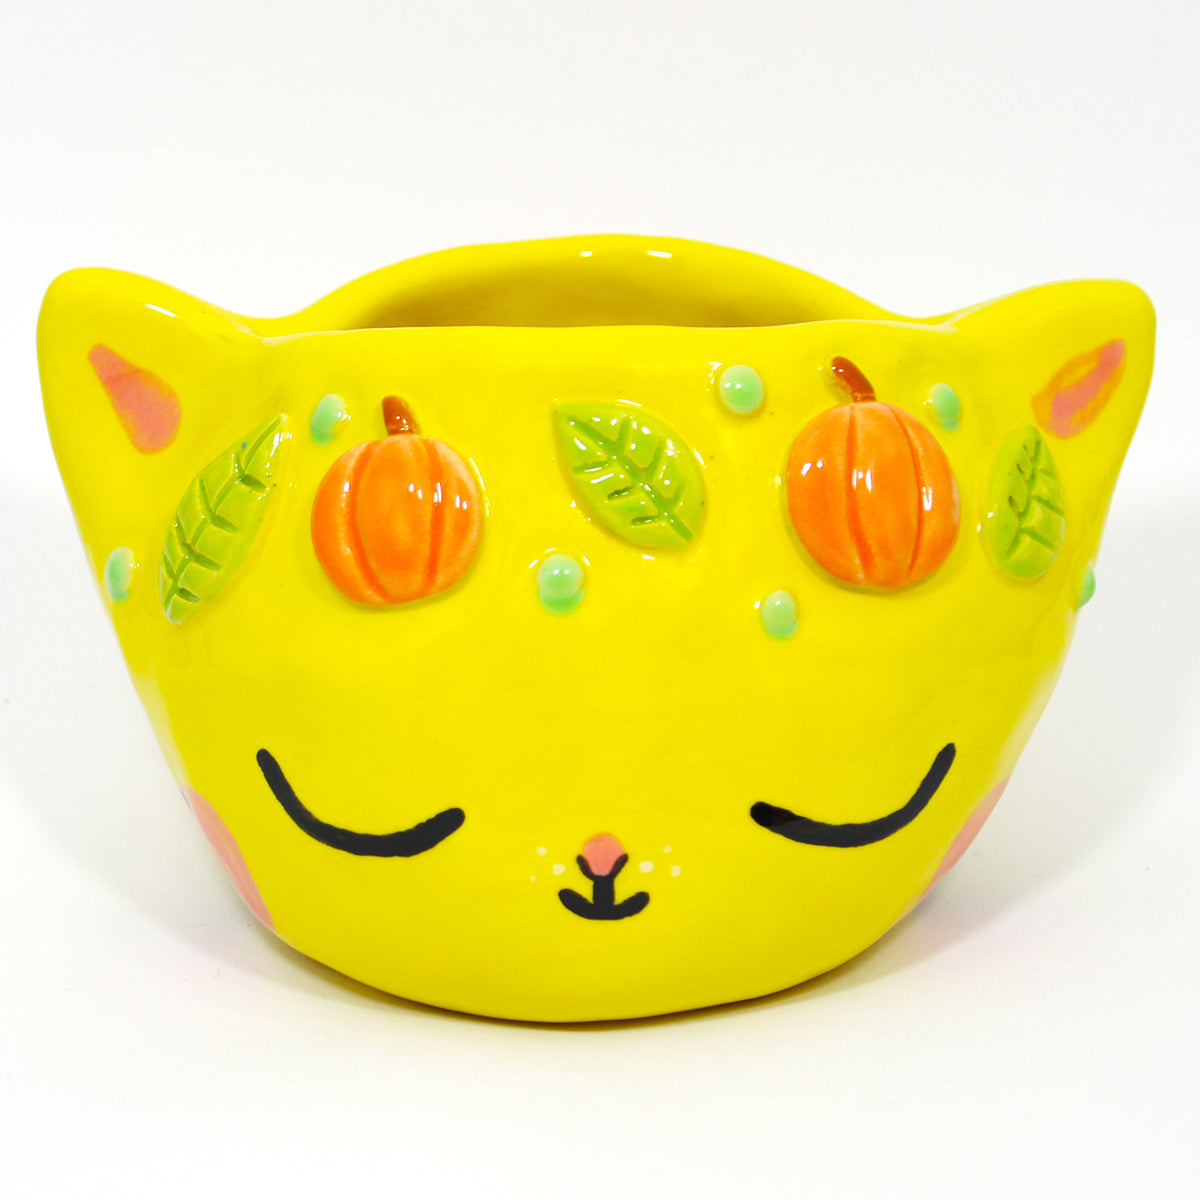 Ceramic Kitty Planter #1191 - M